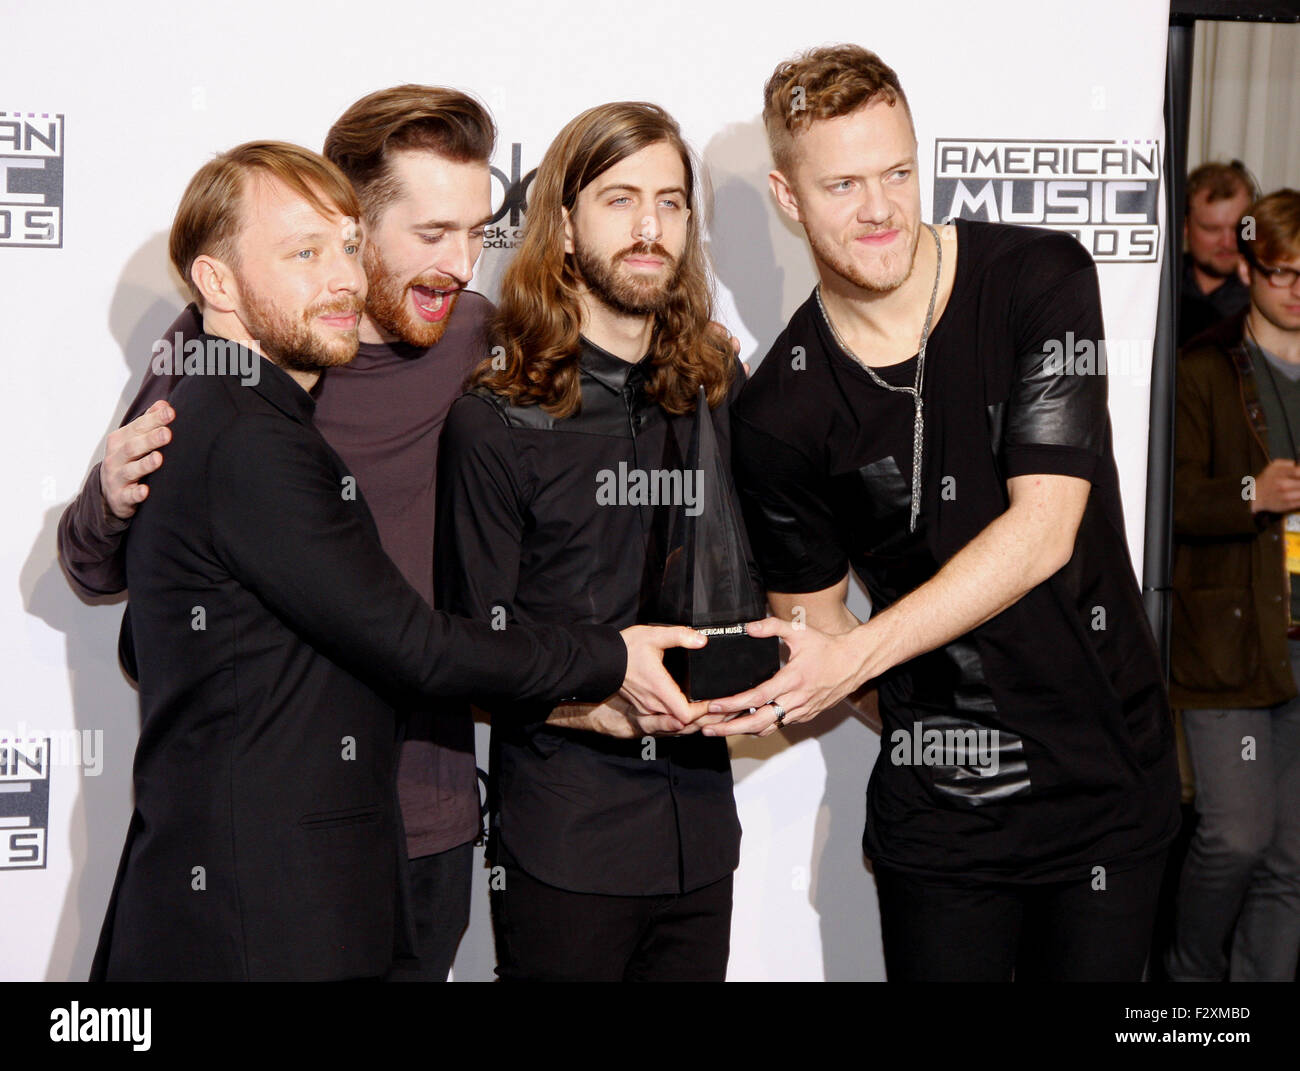 Imagine Dragons at the 2014 American Music Awards held at the Nokia Theatre L.A. Live in Los Angeles on November - Stock Image